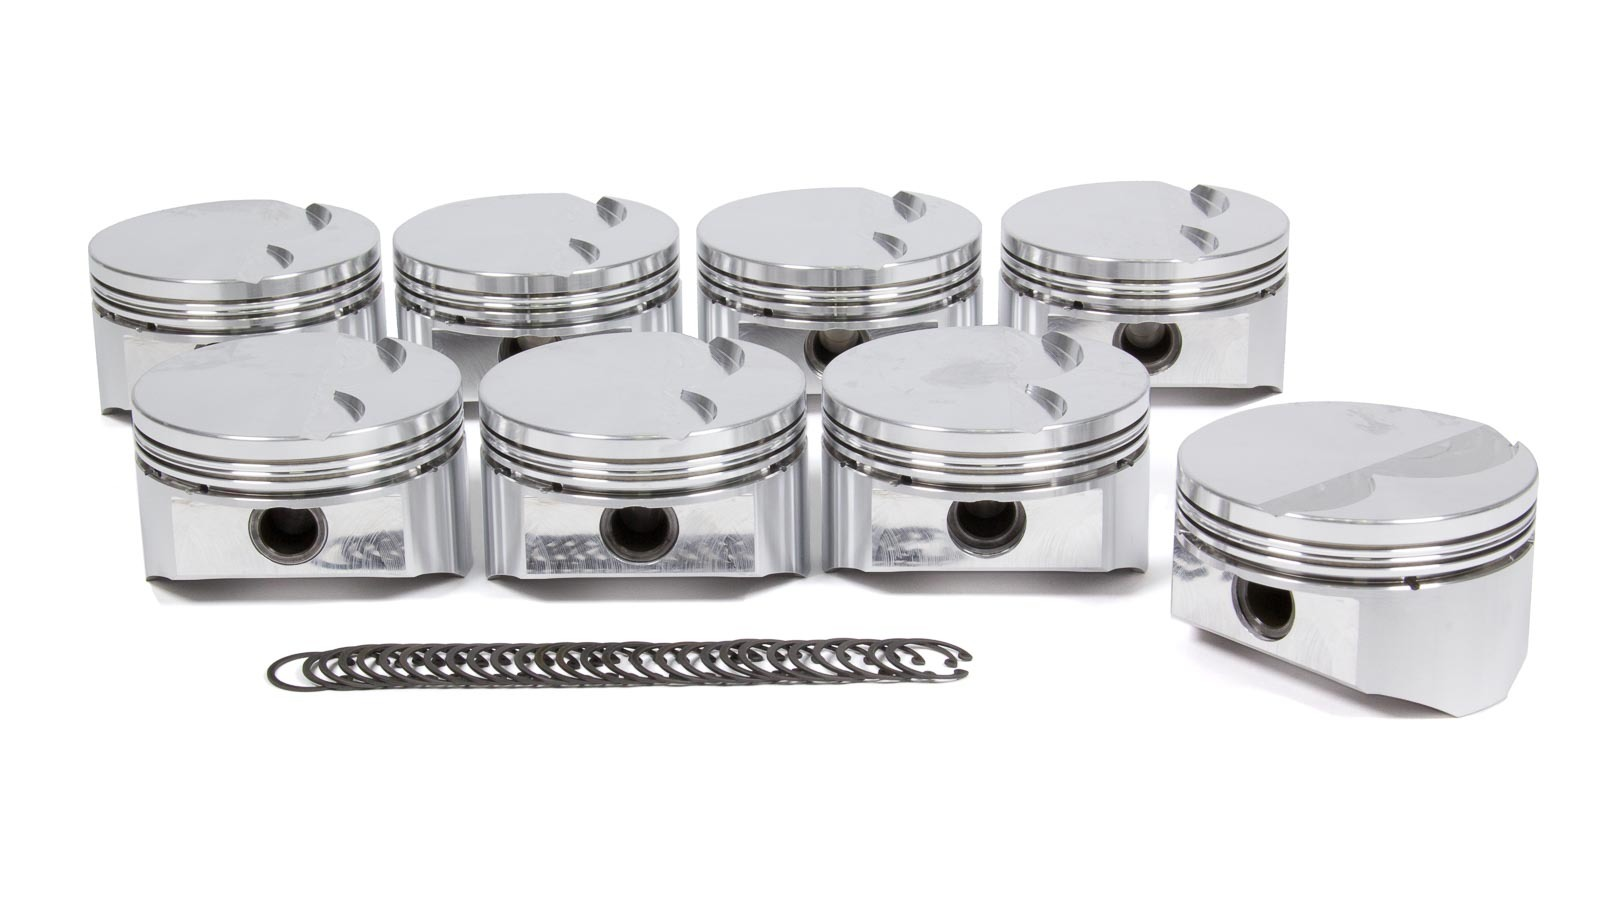 DSS Racing 1830BSX-4030 Piston, SX Series, Forged, 4.030 in Bore, 1.5 x 1.5 x 3.0 mm Ring Grooves, Minus 5.0 cc, GM LS-Series, Set of 8